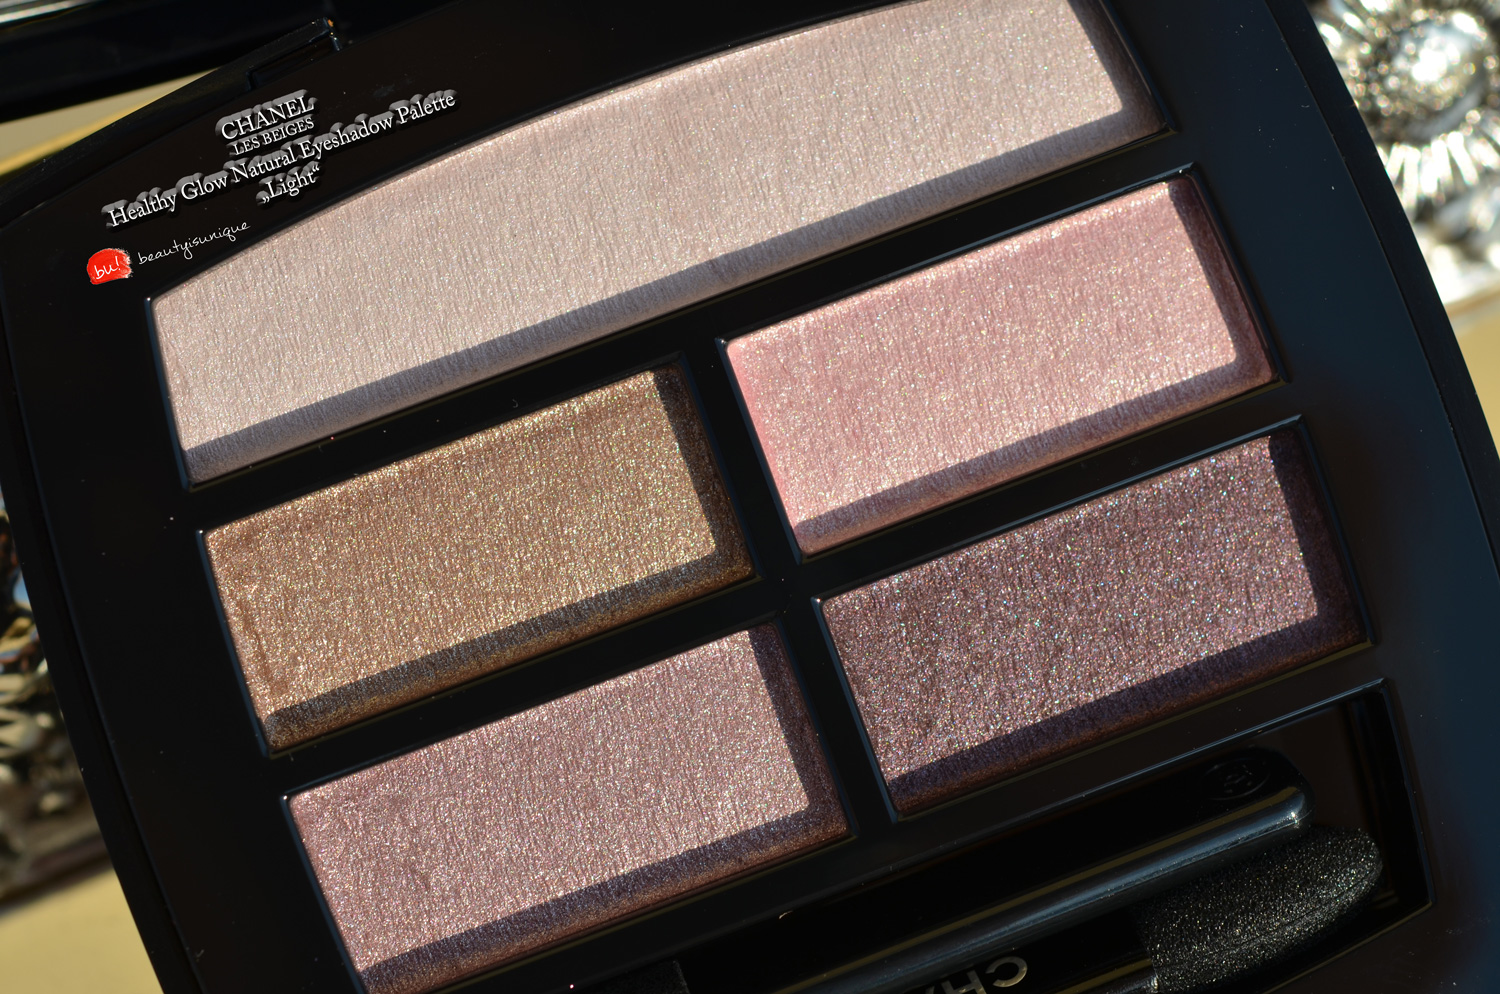 Chanel-les-beige-eyeshadow-palette-light